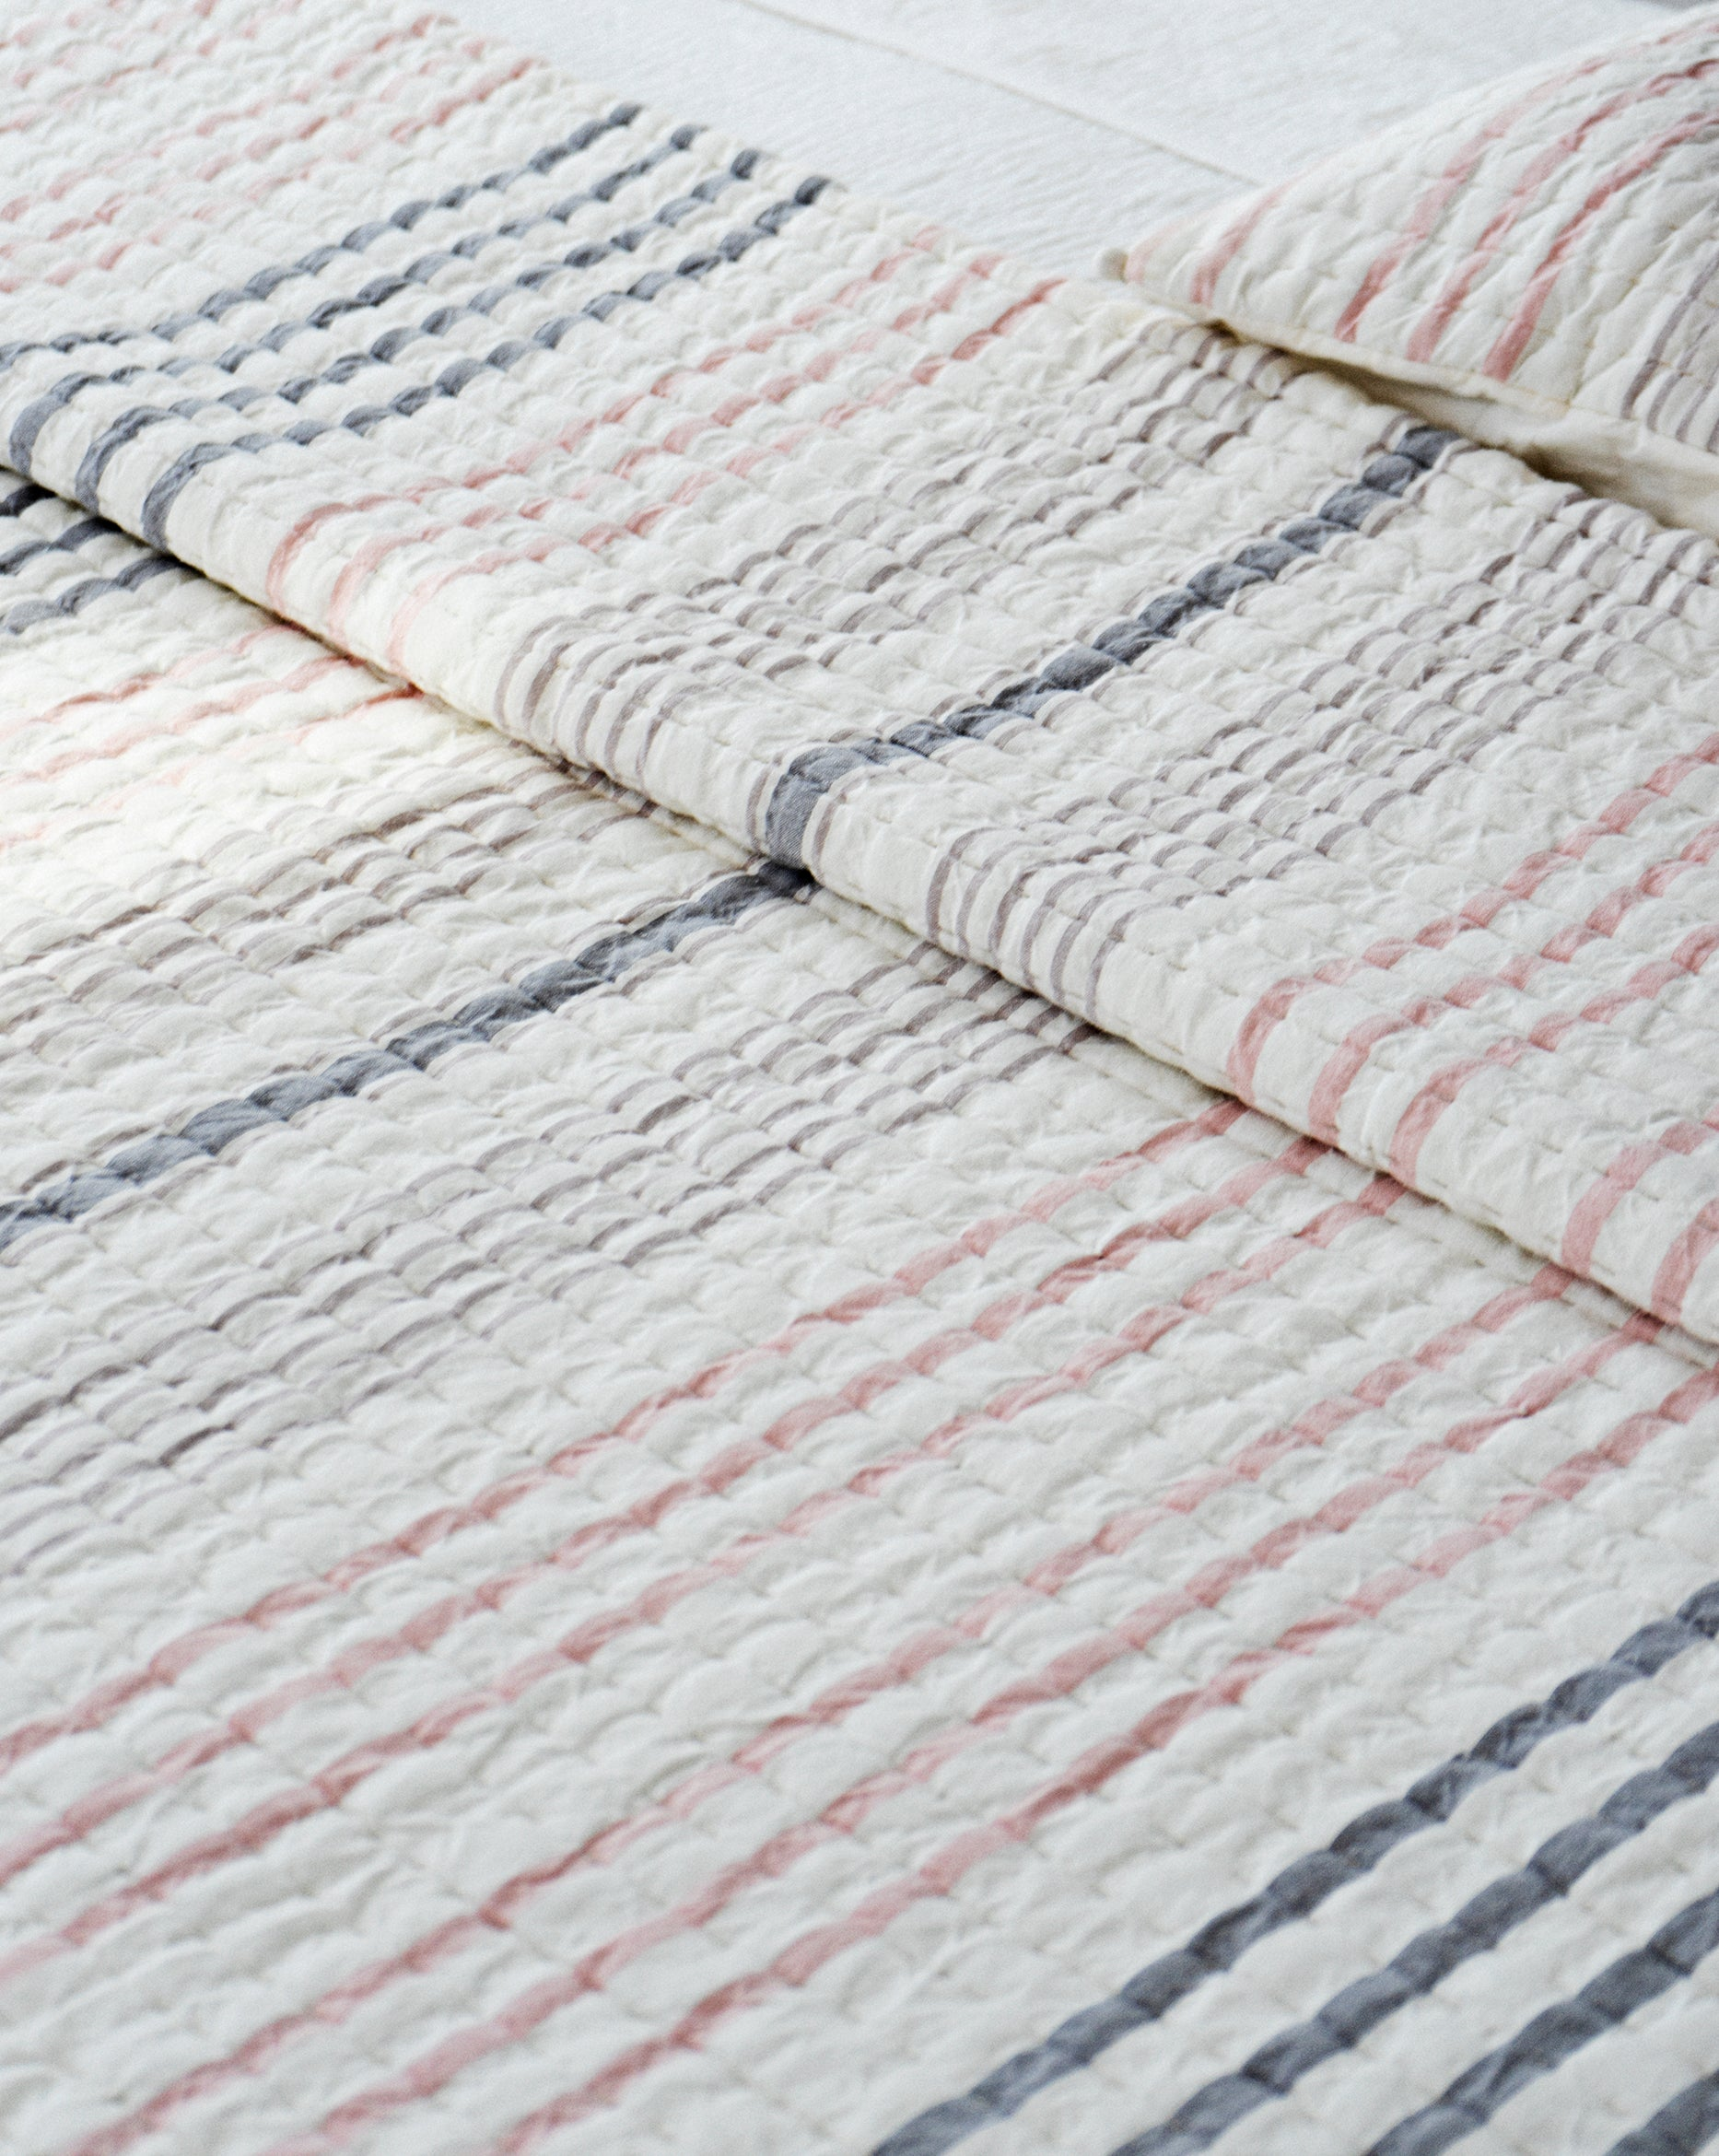 White quilt with pink and gray stripes.